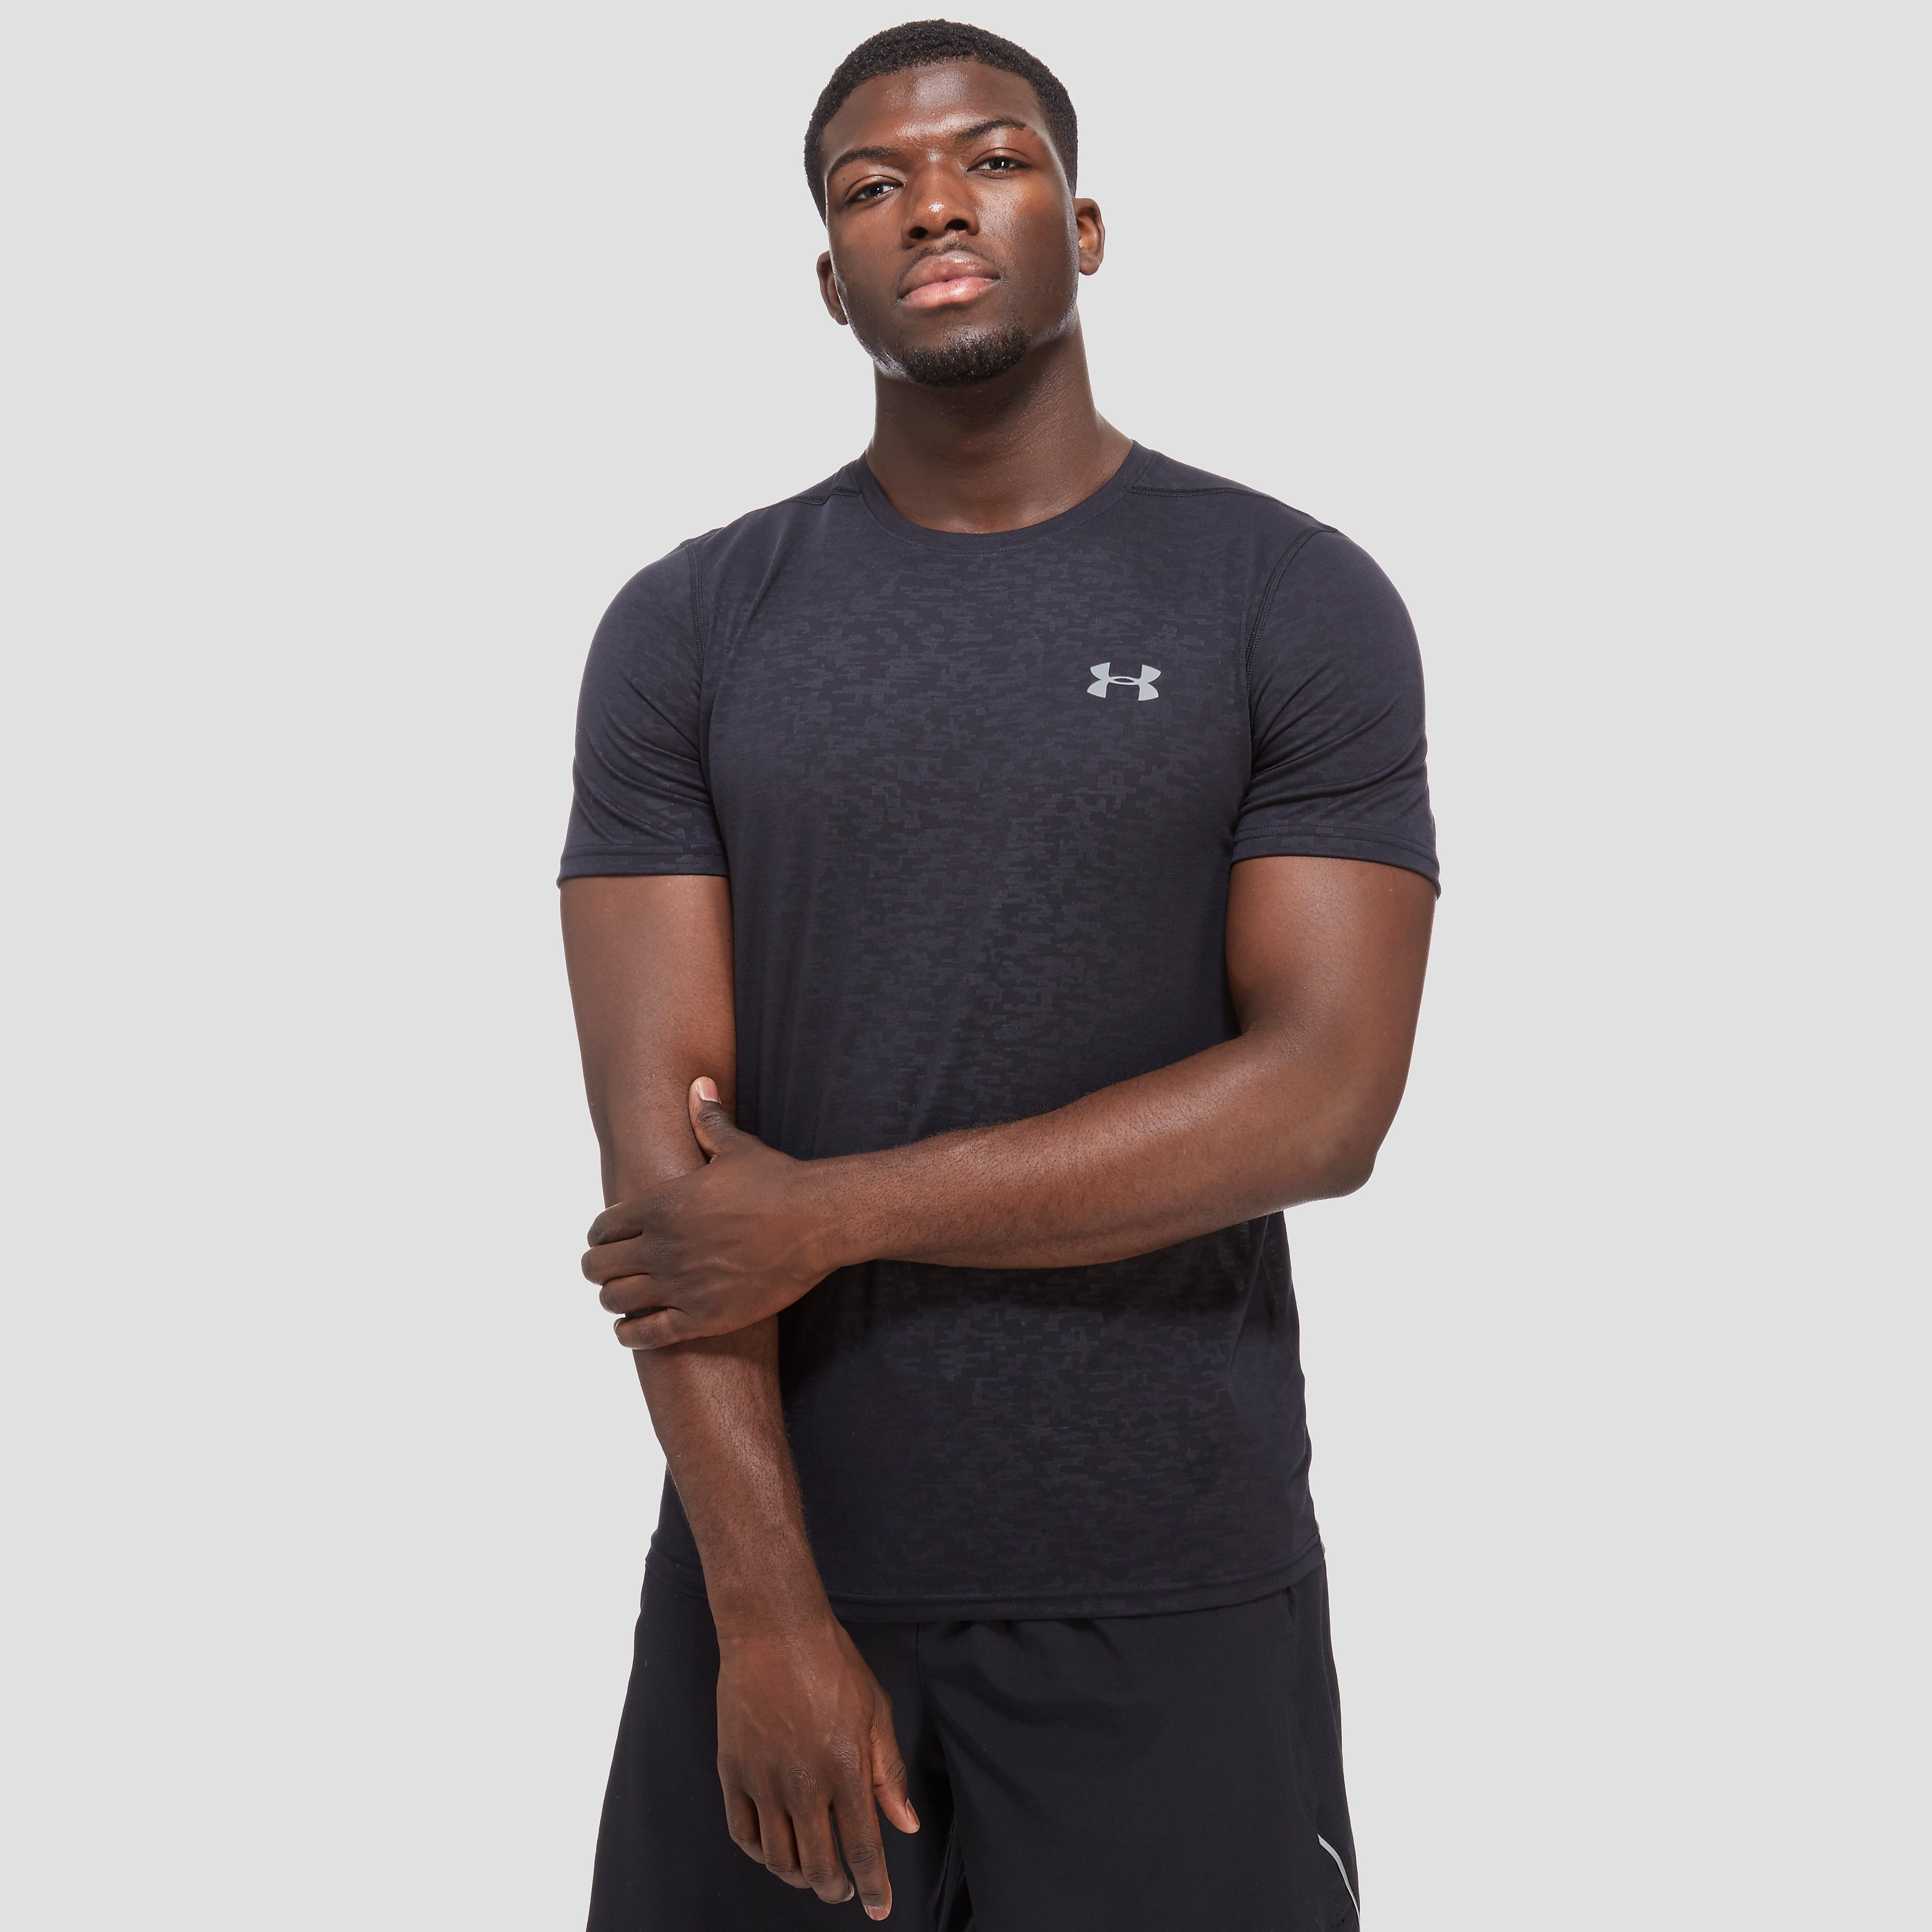 Under Armour Threadborne Jacquard Men's T-shirt